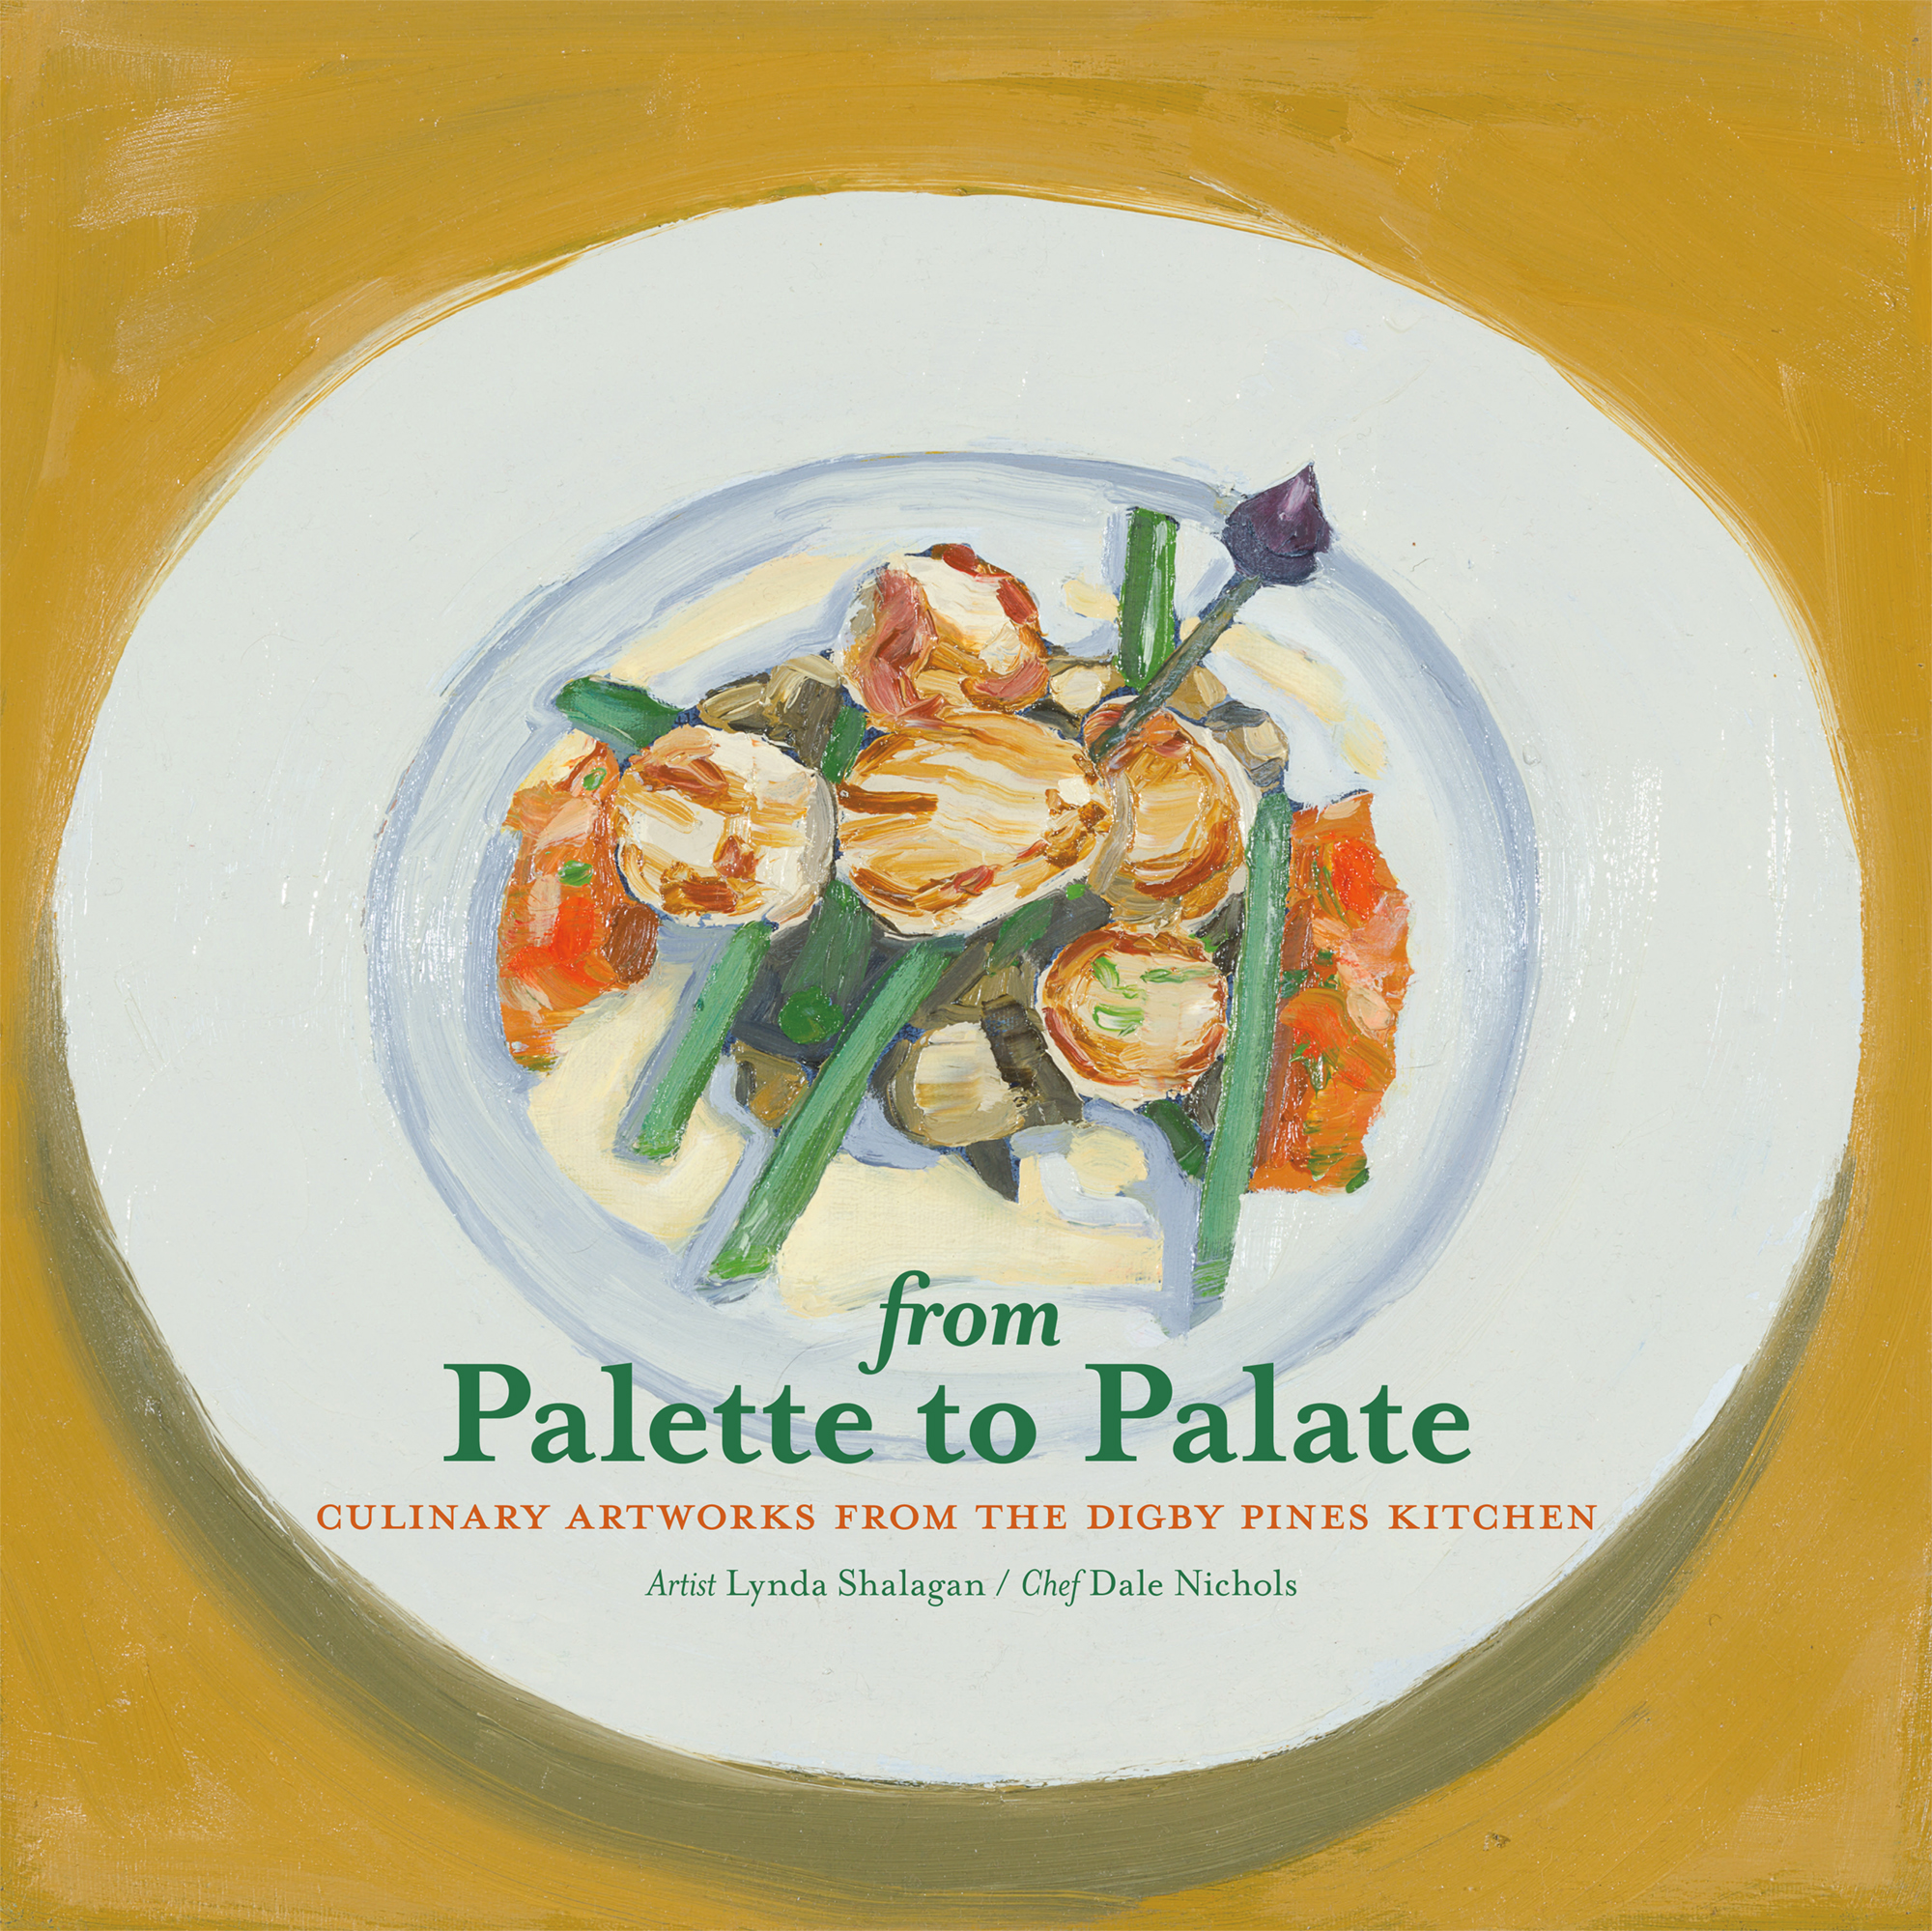 From Palette to Palate